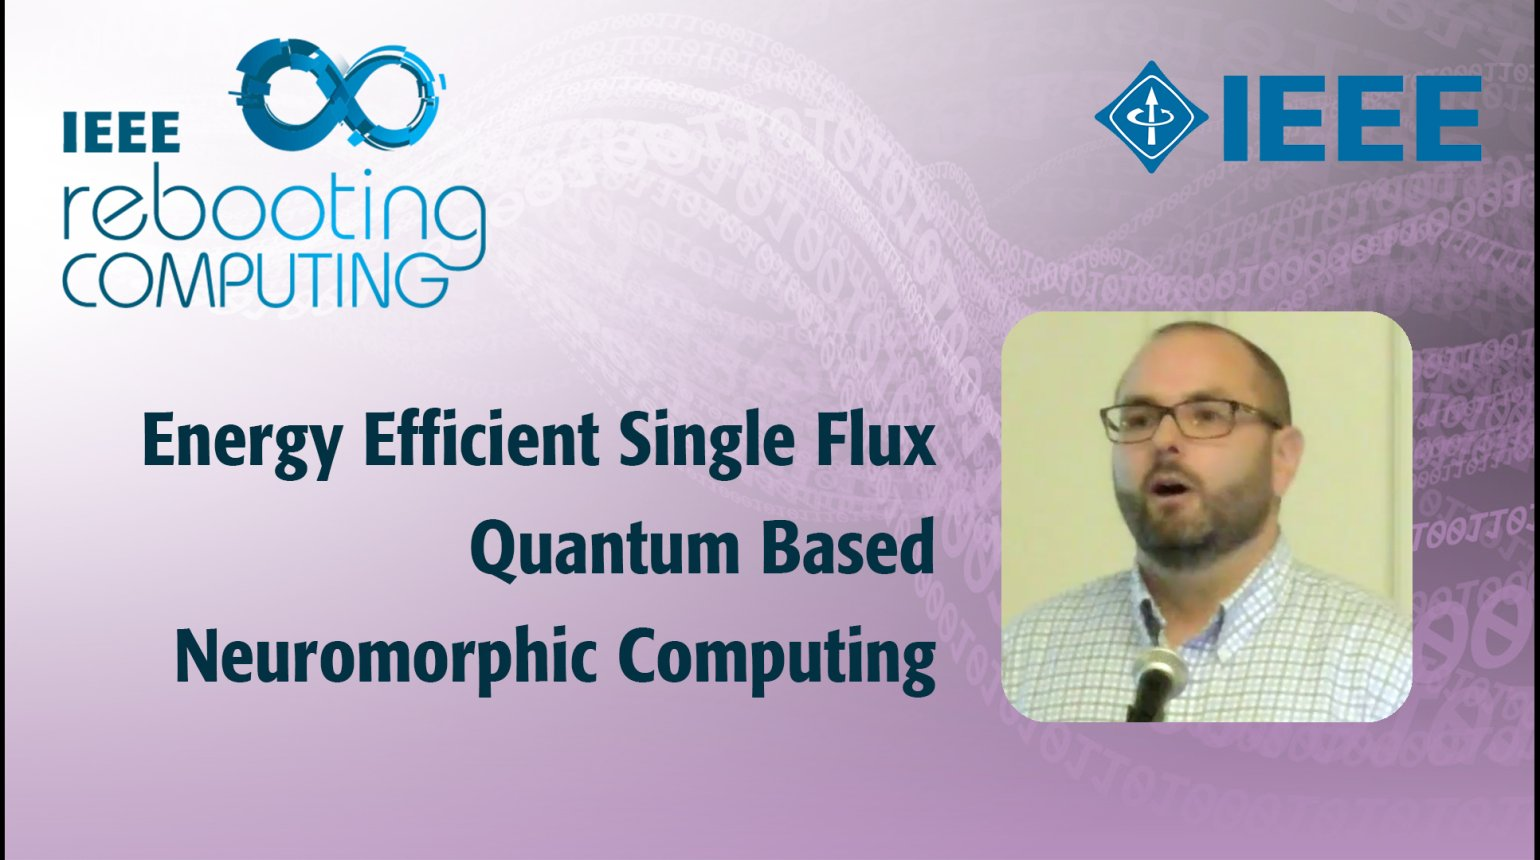 Energy Efficient Single Flux Quantum Based Neuromorphic Computing - IEEE Rebooting Computing 2017